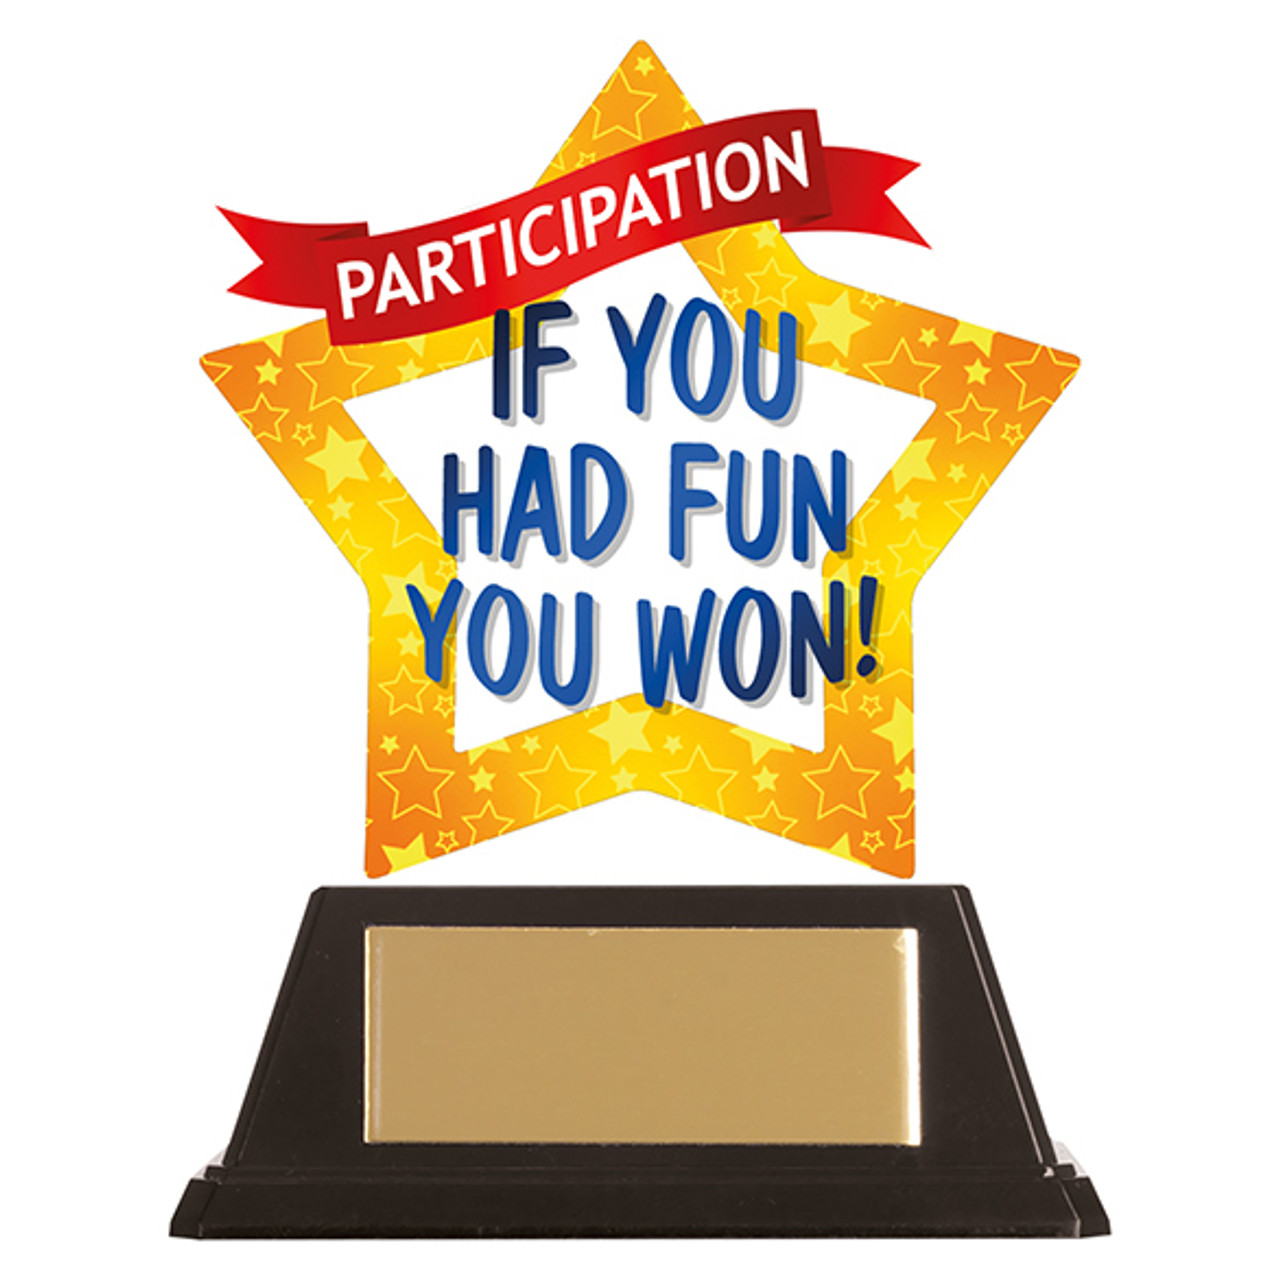 Participation acrylic award 1st Place 4 Trophies FREE engraving